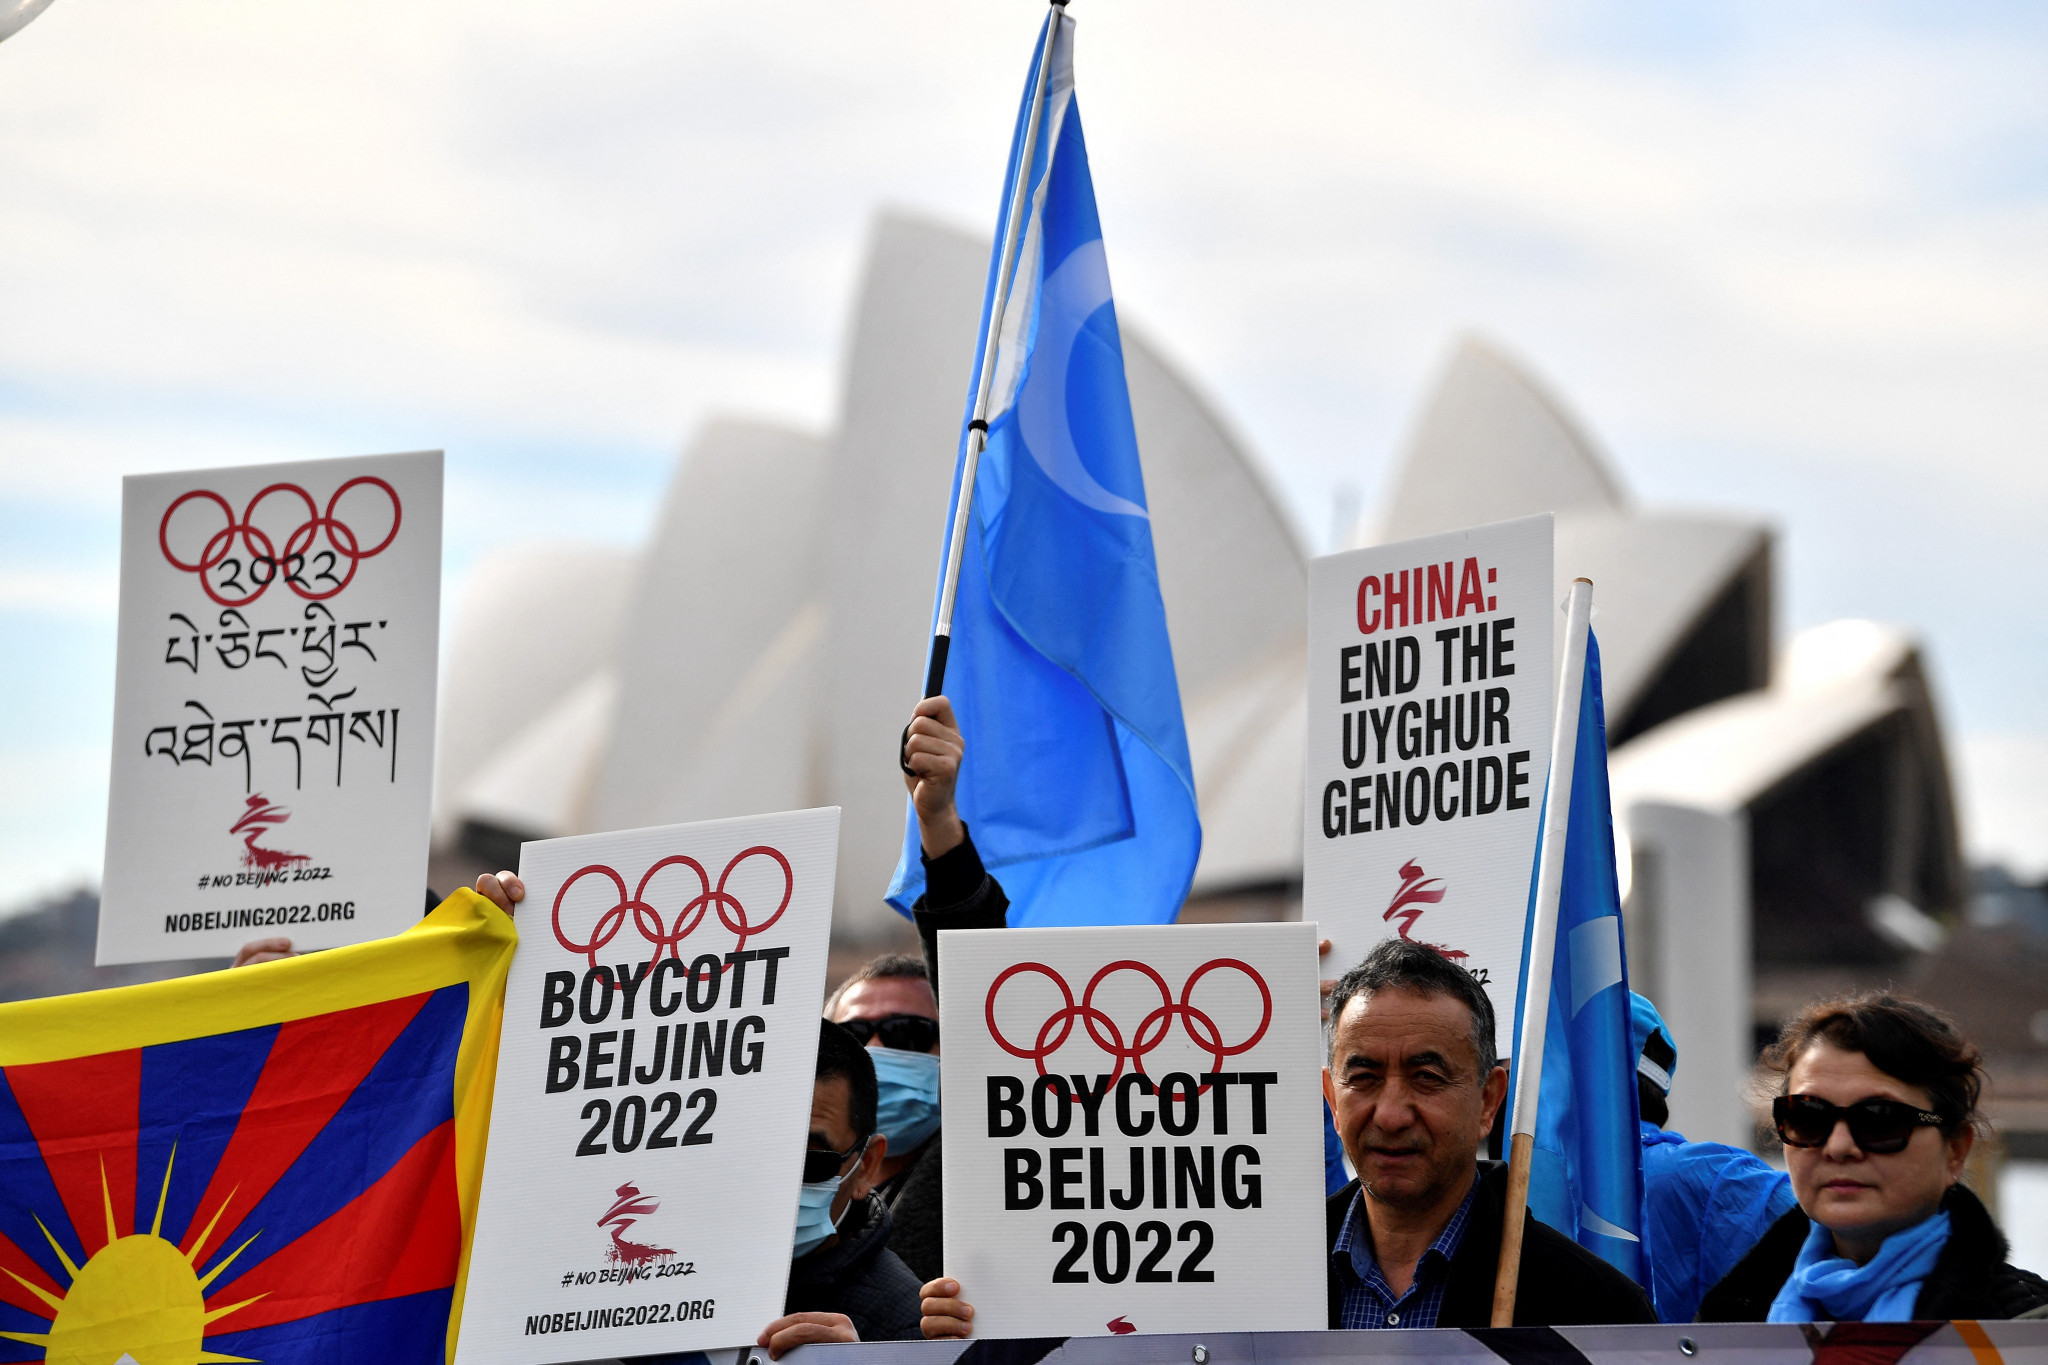 Calls are being made for the country to boycott the Beijing 2022 Winter Olympics over human rights concerns © Getty Images